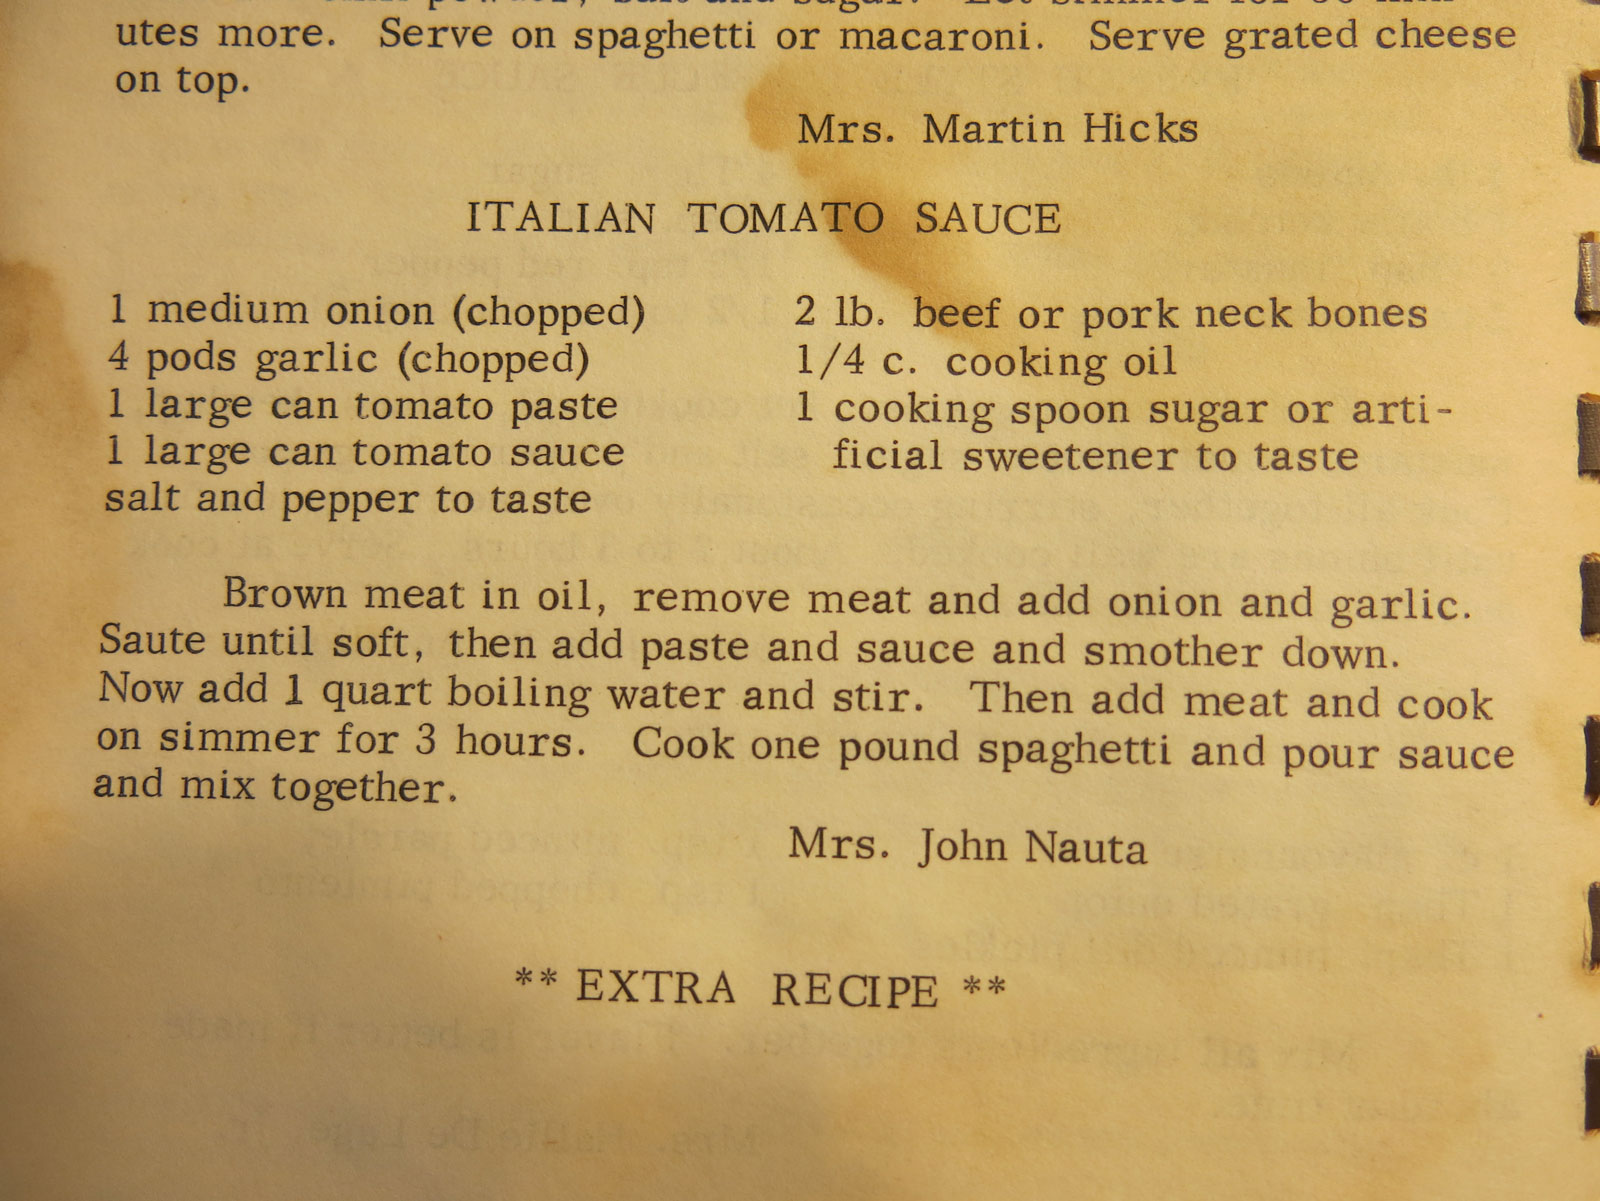 Mom's famous homemade ragu recipe. I use pork sausage in lieu of the pork neck bones.